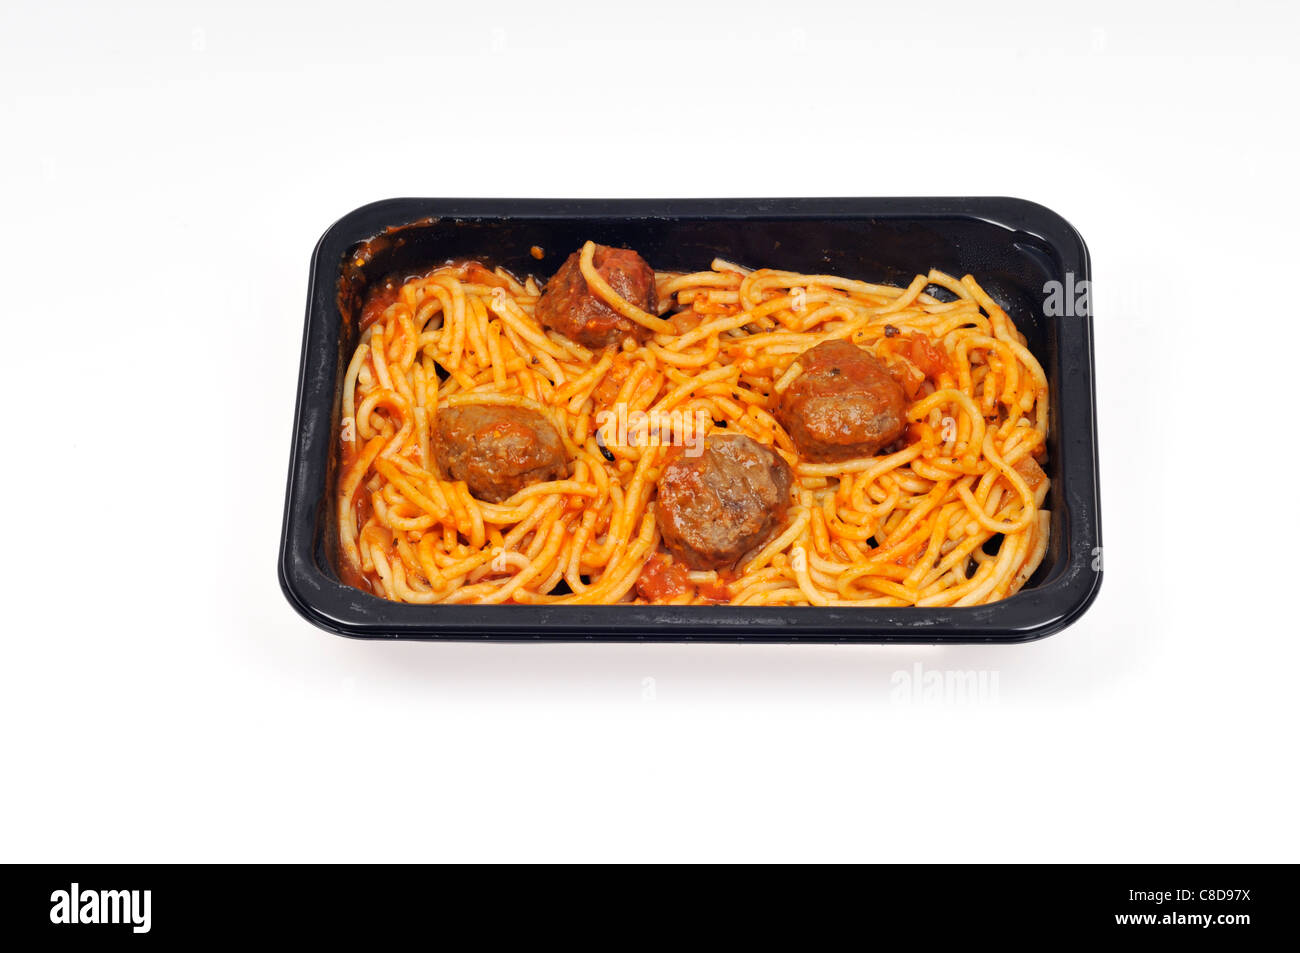 Tray of cooked microwave spaghetti and meatballs readymeal on white background, cutout. - Stock Image